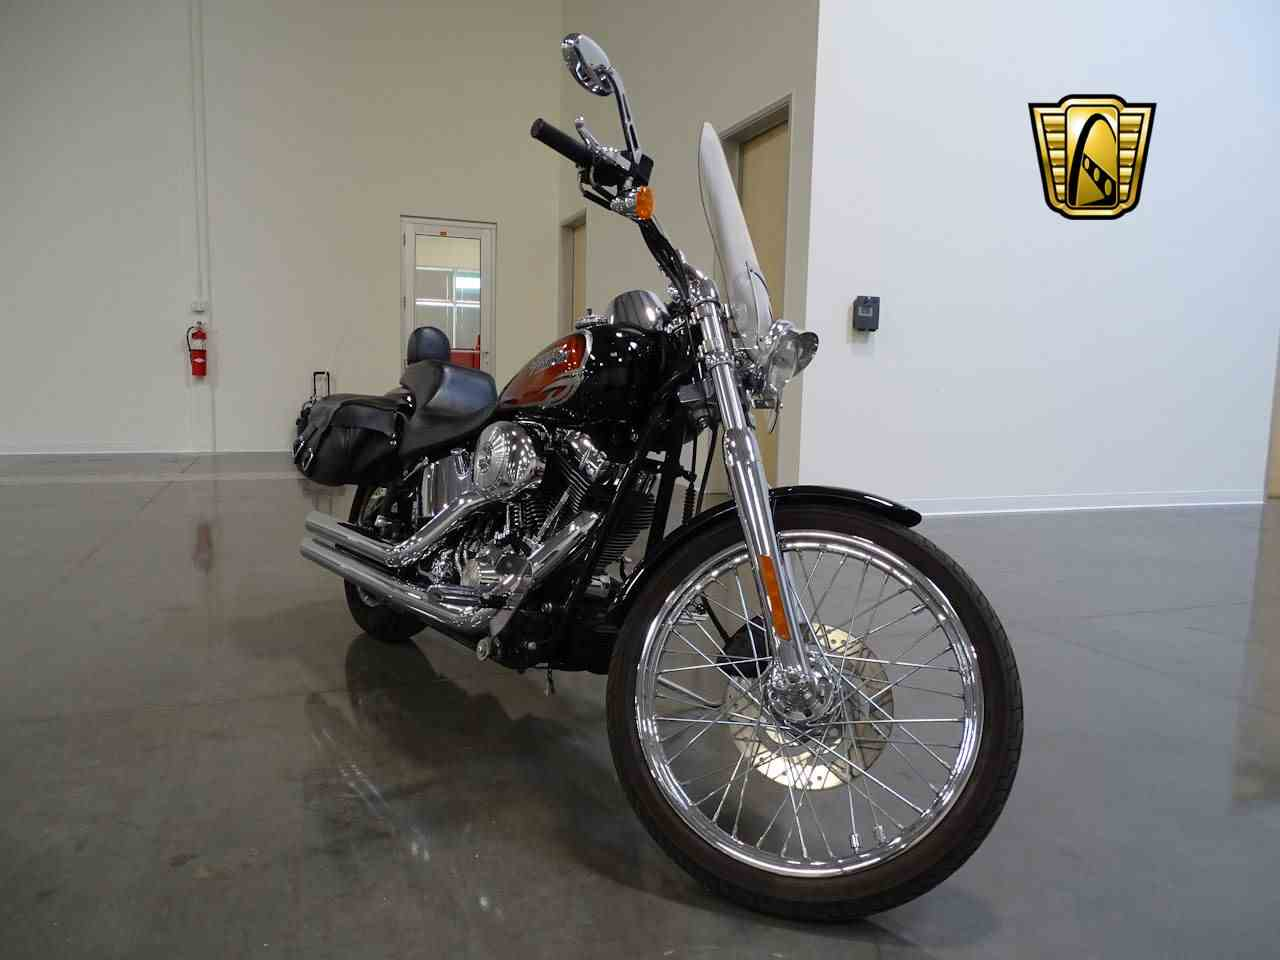 Large Picture of 2001 Harley-Davidson FXSTDI located in Deer Valley Arizona Offered by Gateway Classic Cars - Scottsdale - M79F